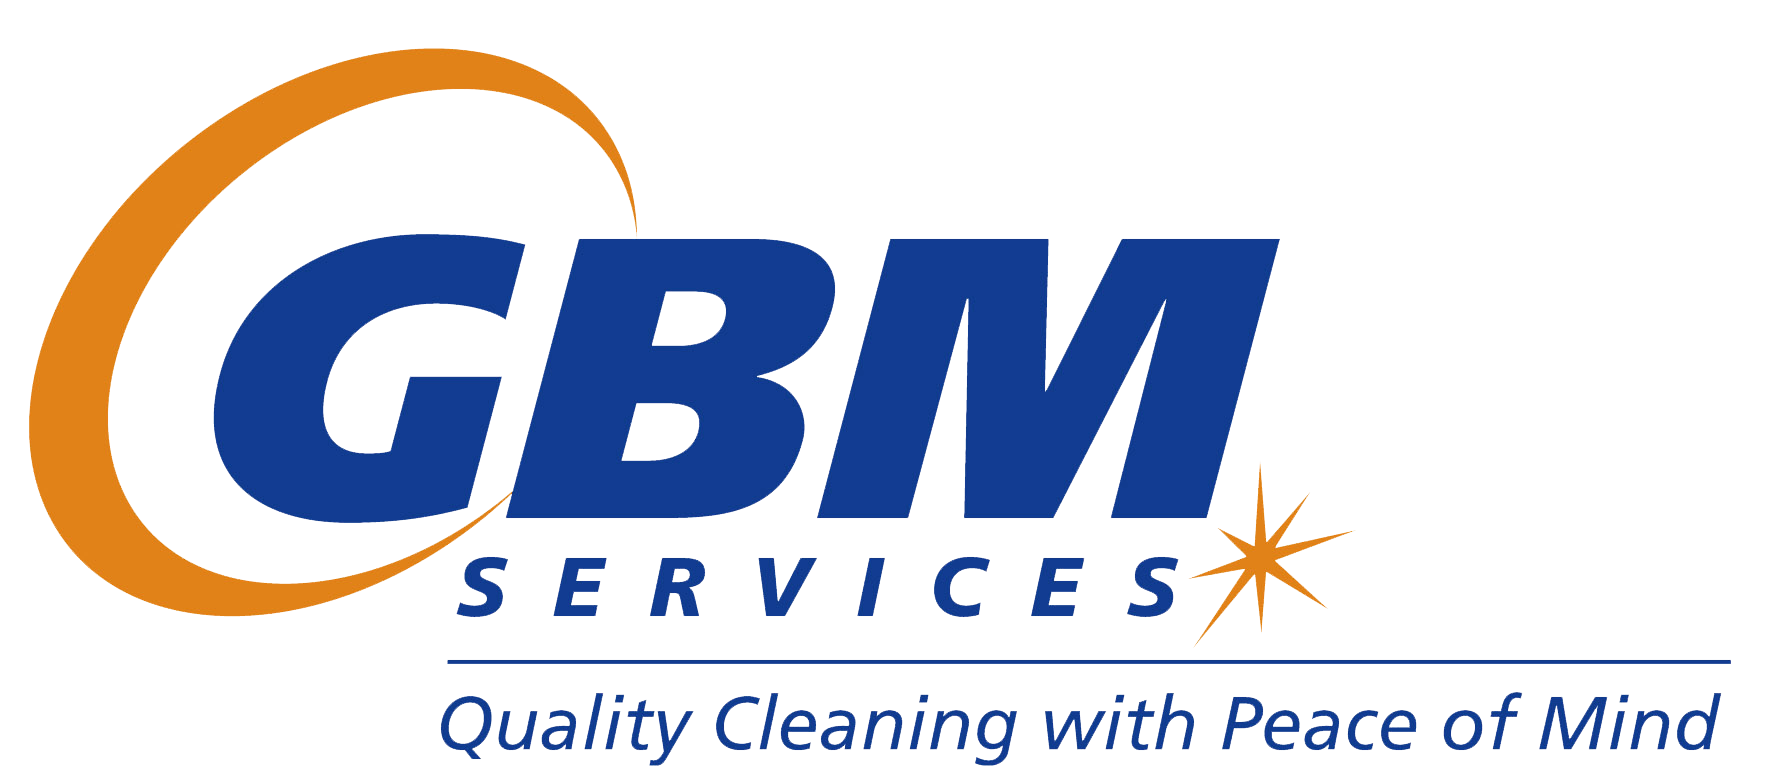 GBM SERVICES INC.